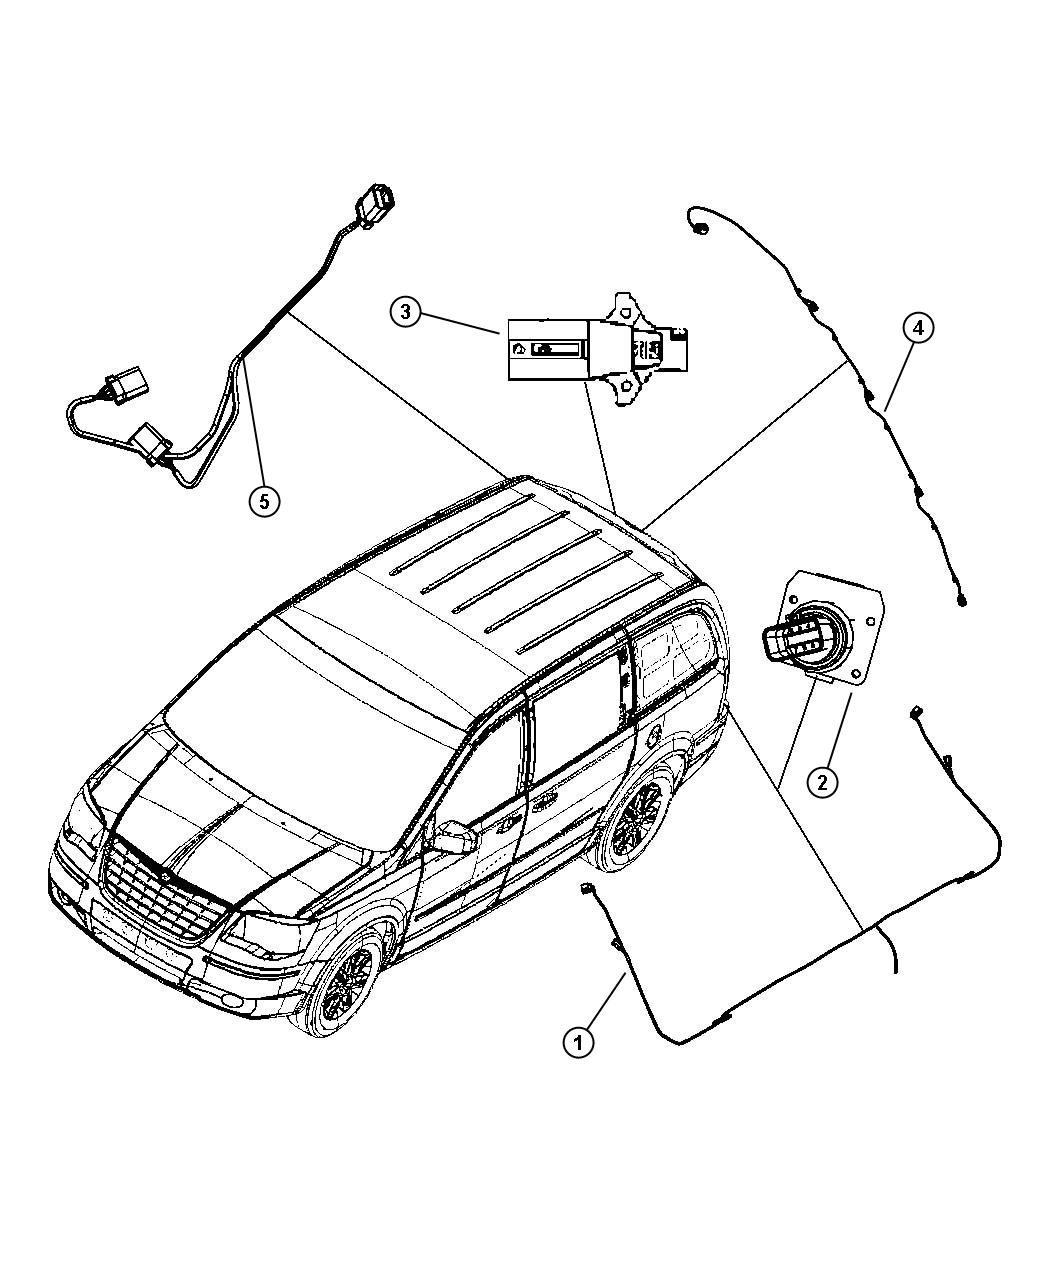 Dodge Grand Caravan Wiring. Trailer tow package